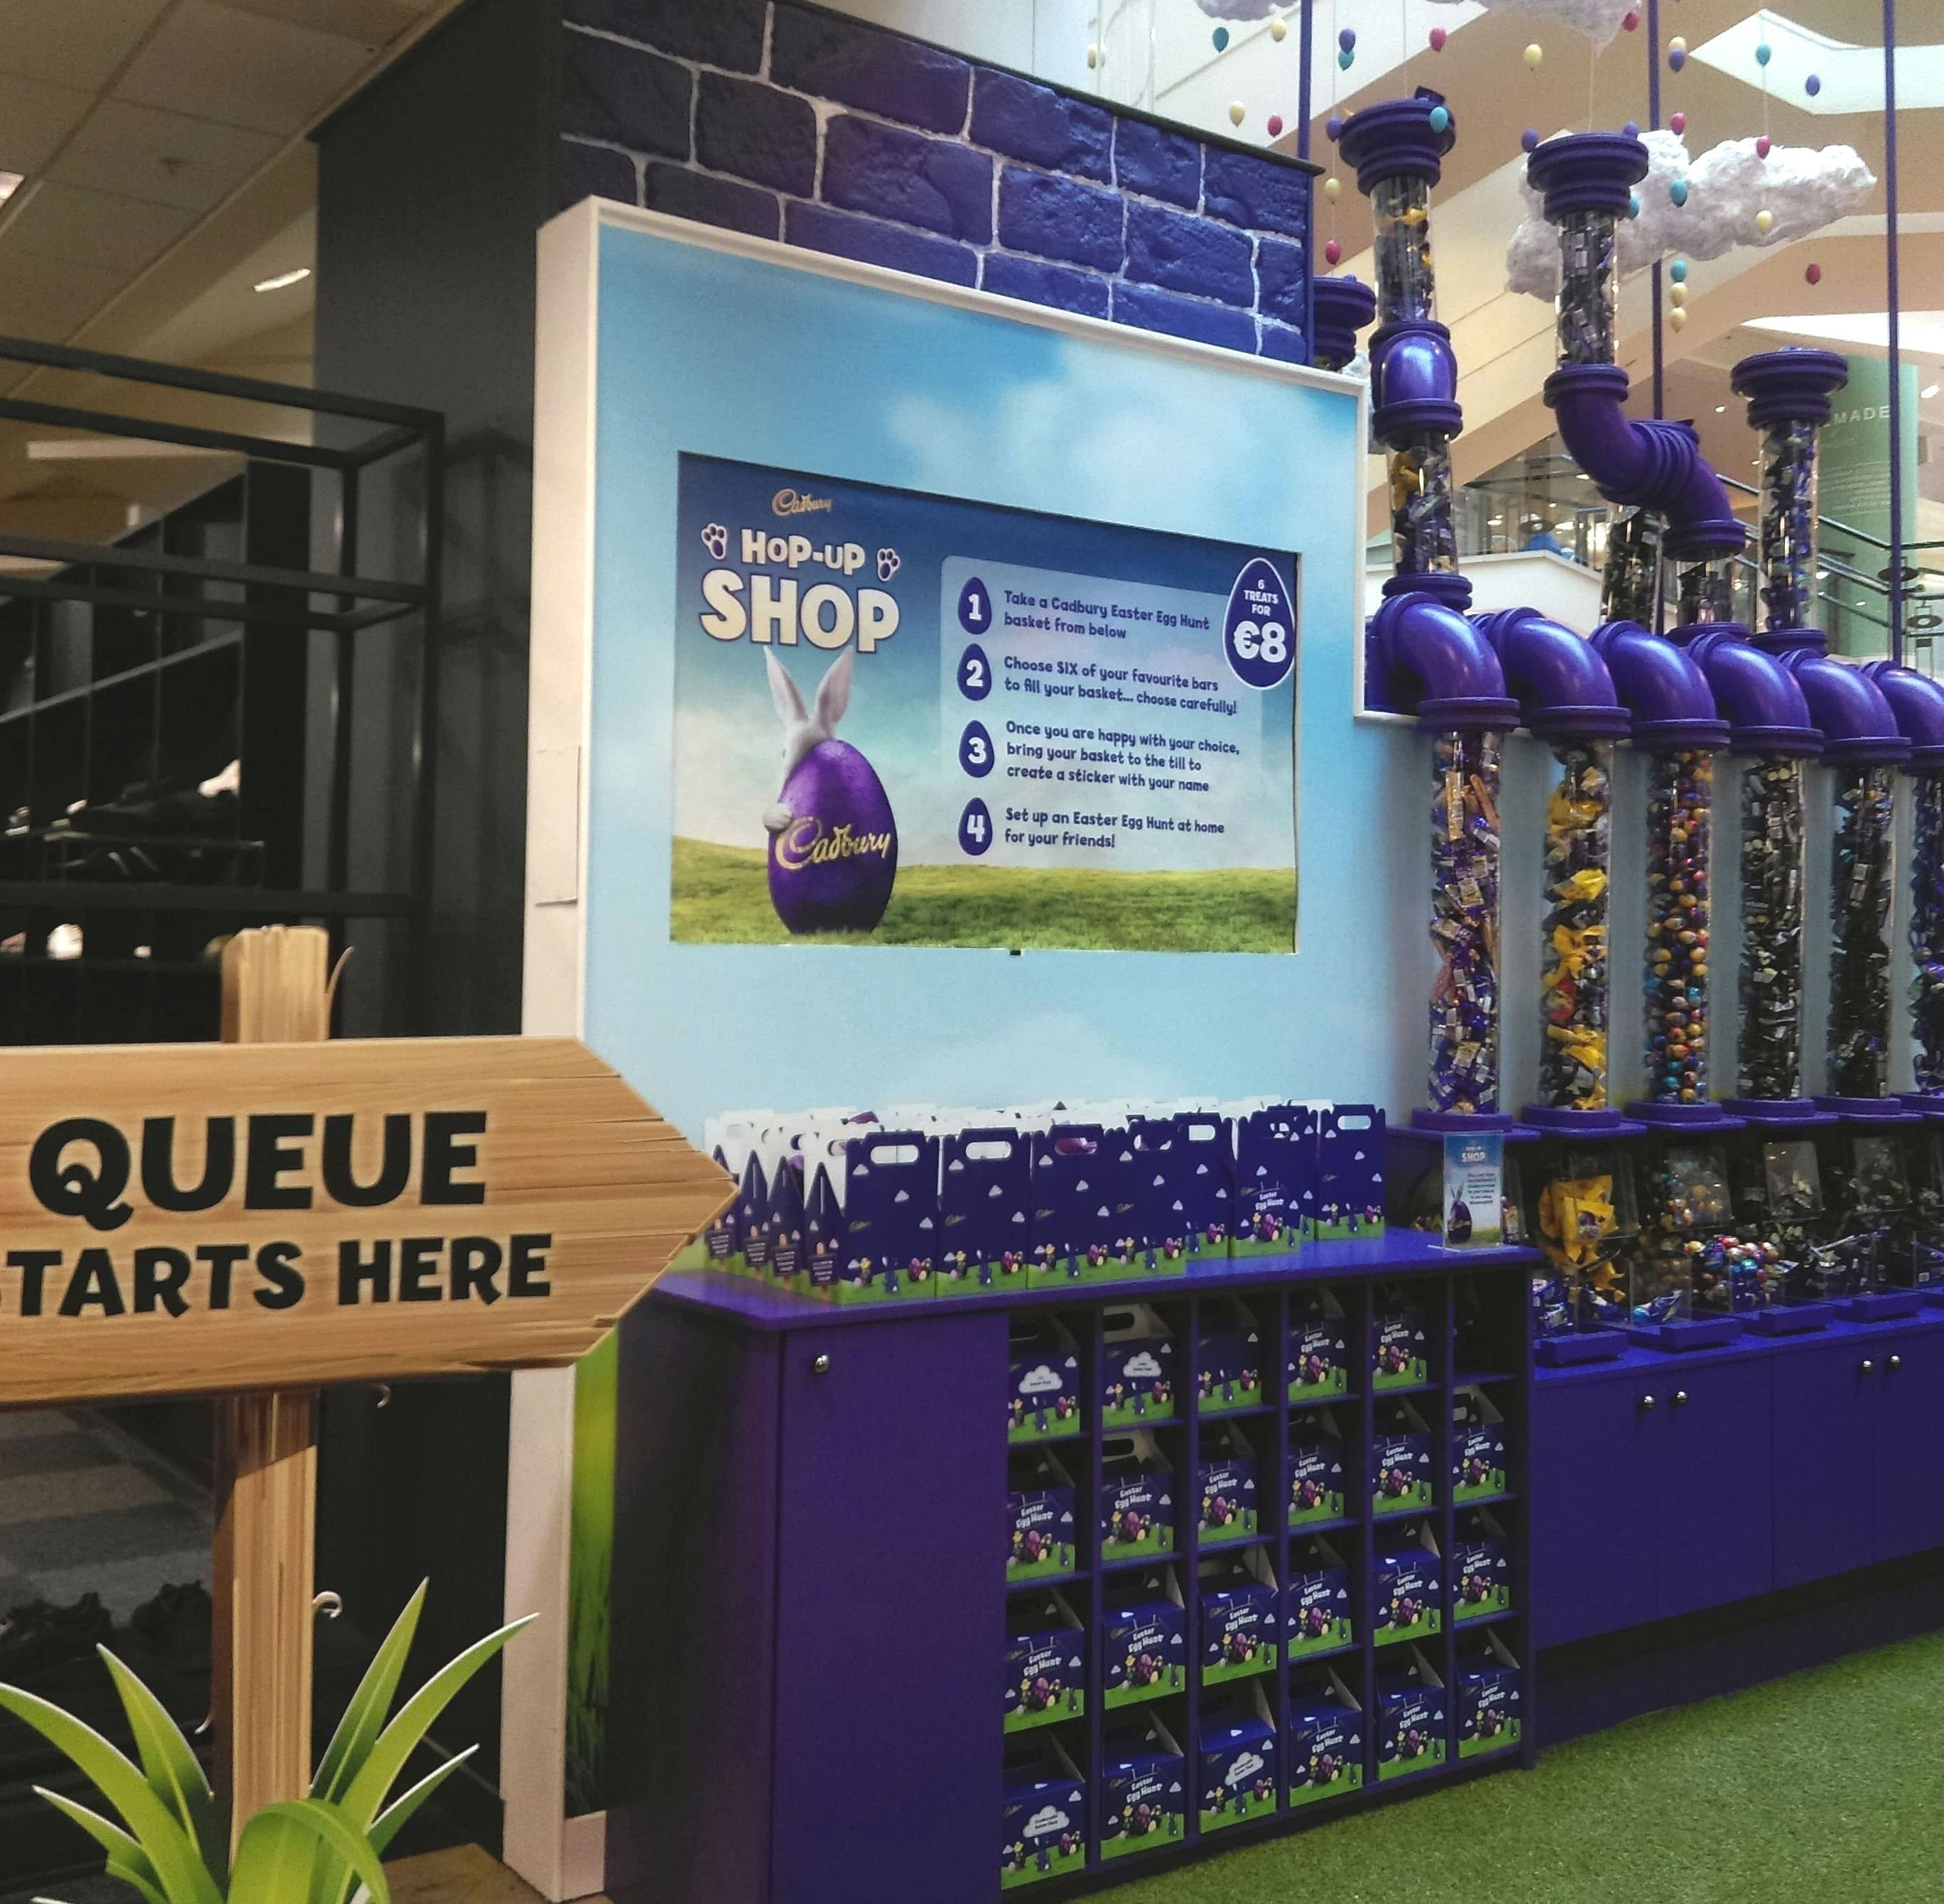 4d6a2575794f3 You can also sit on a giant purple Easter egg for a fun, family photo  opportunity! While you're in Arnotts, you can also visit the face painters  in the ...